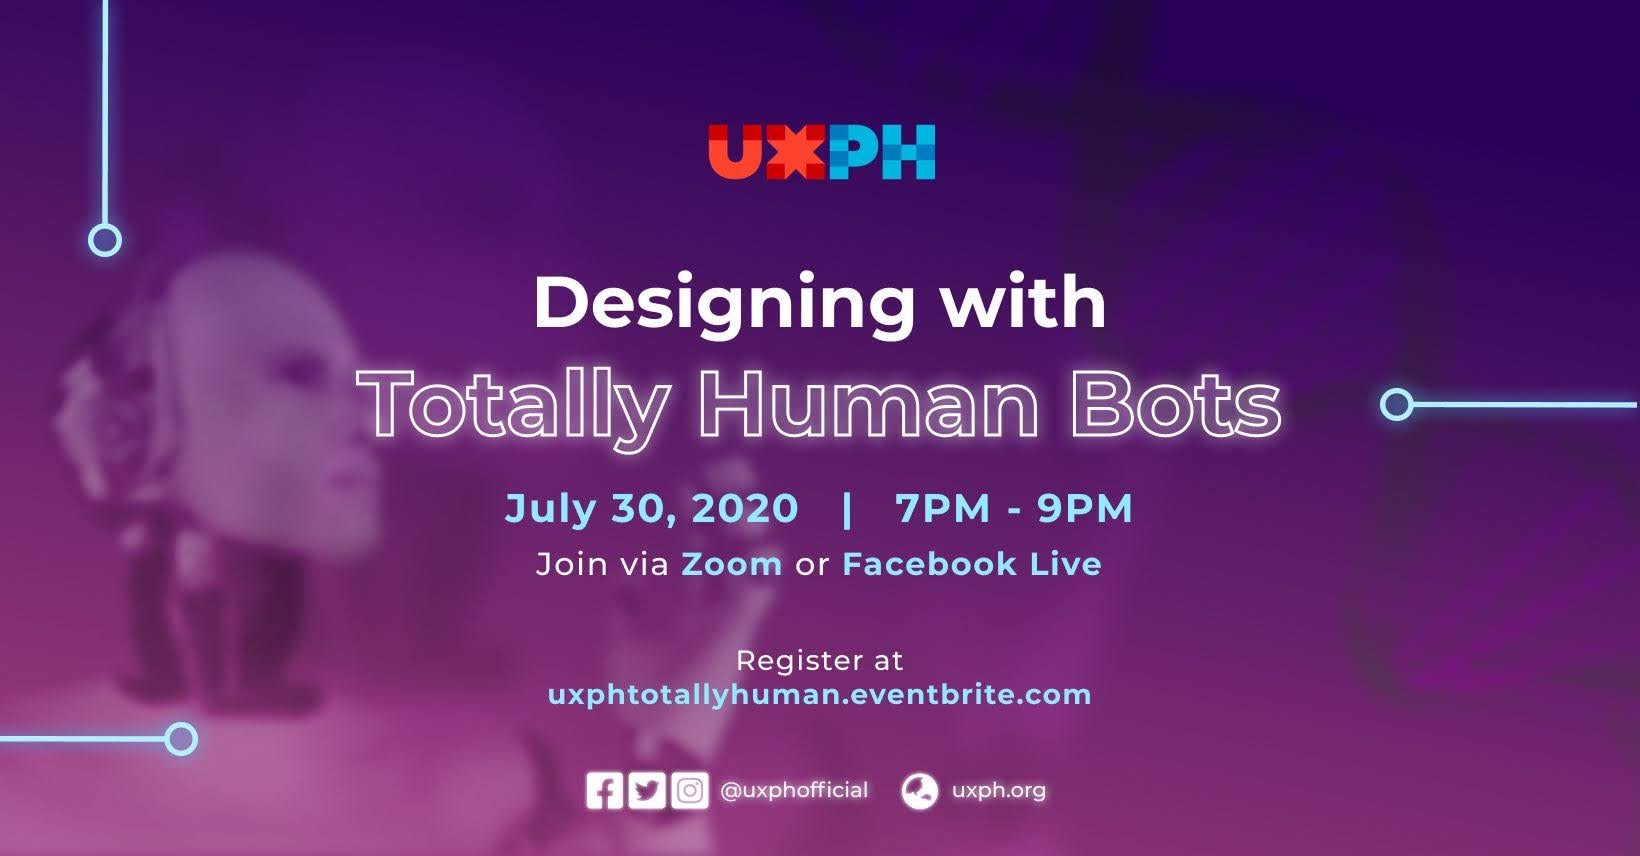 Designing with Totally Human Bots